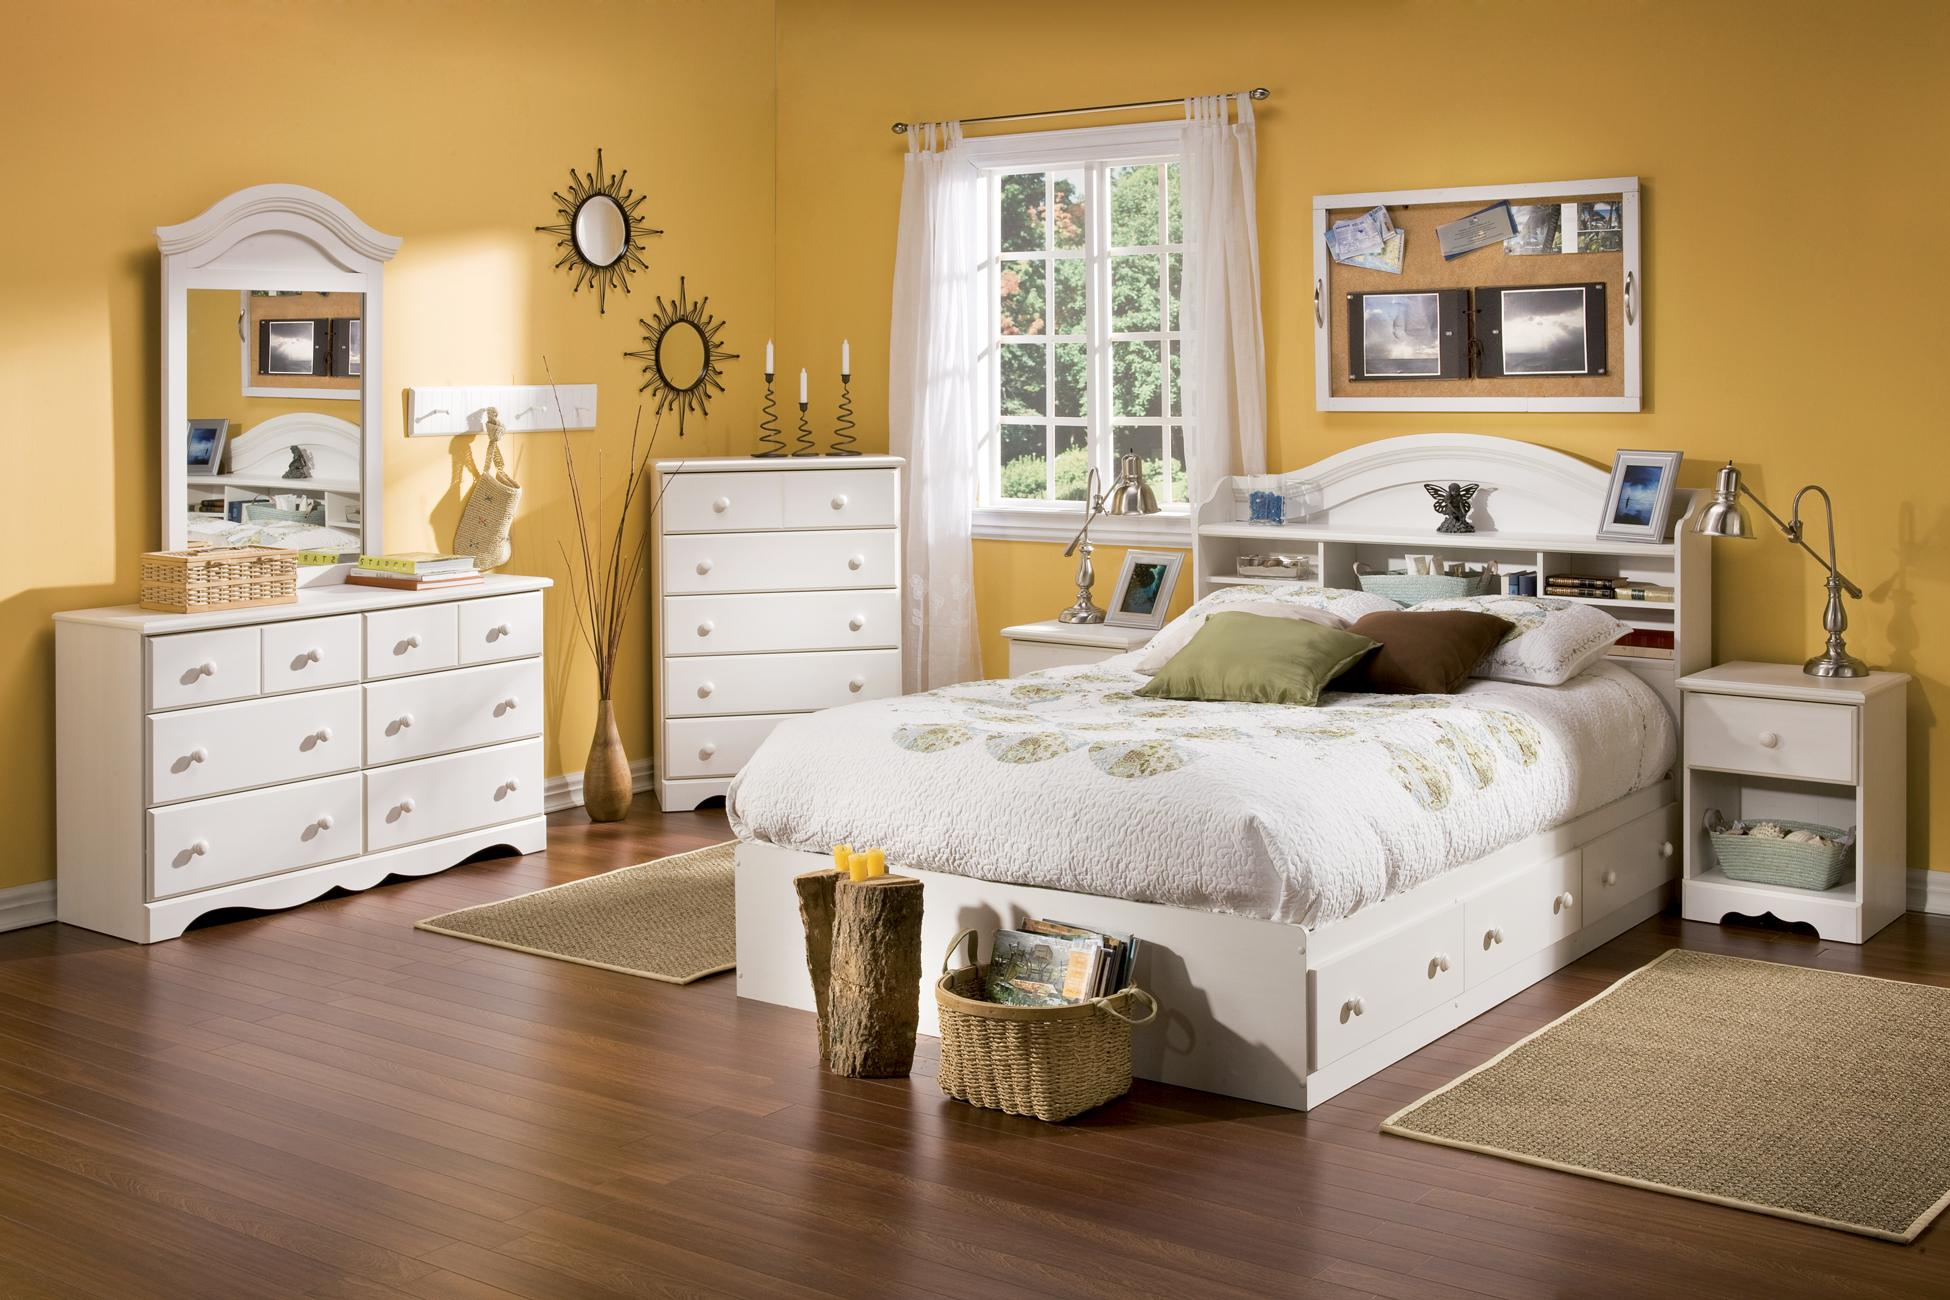 South Shore Bedroom Furniture Amazoncom South Shore Furniture Summer Breeze Collection